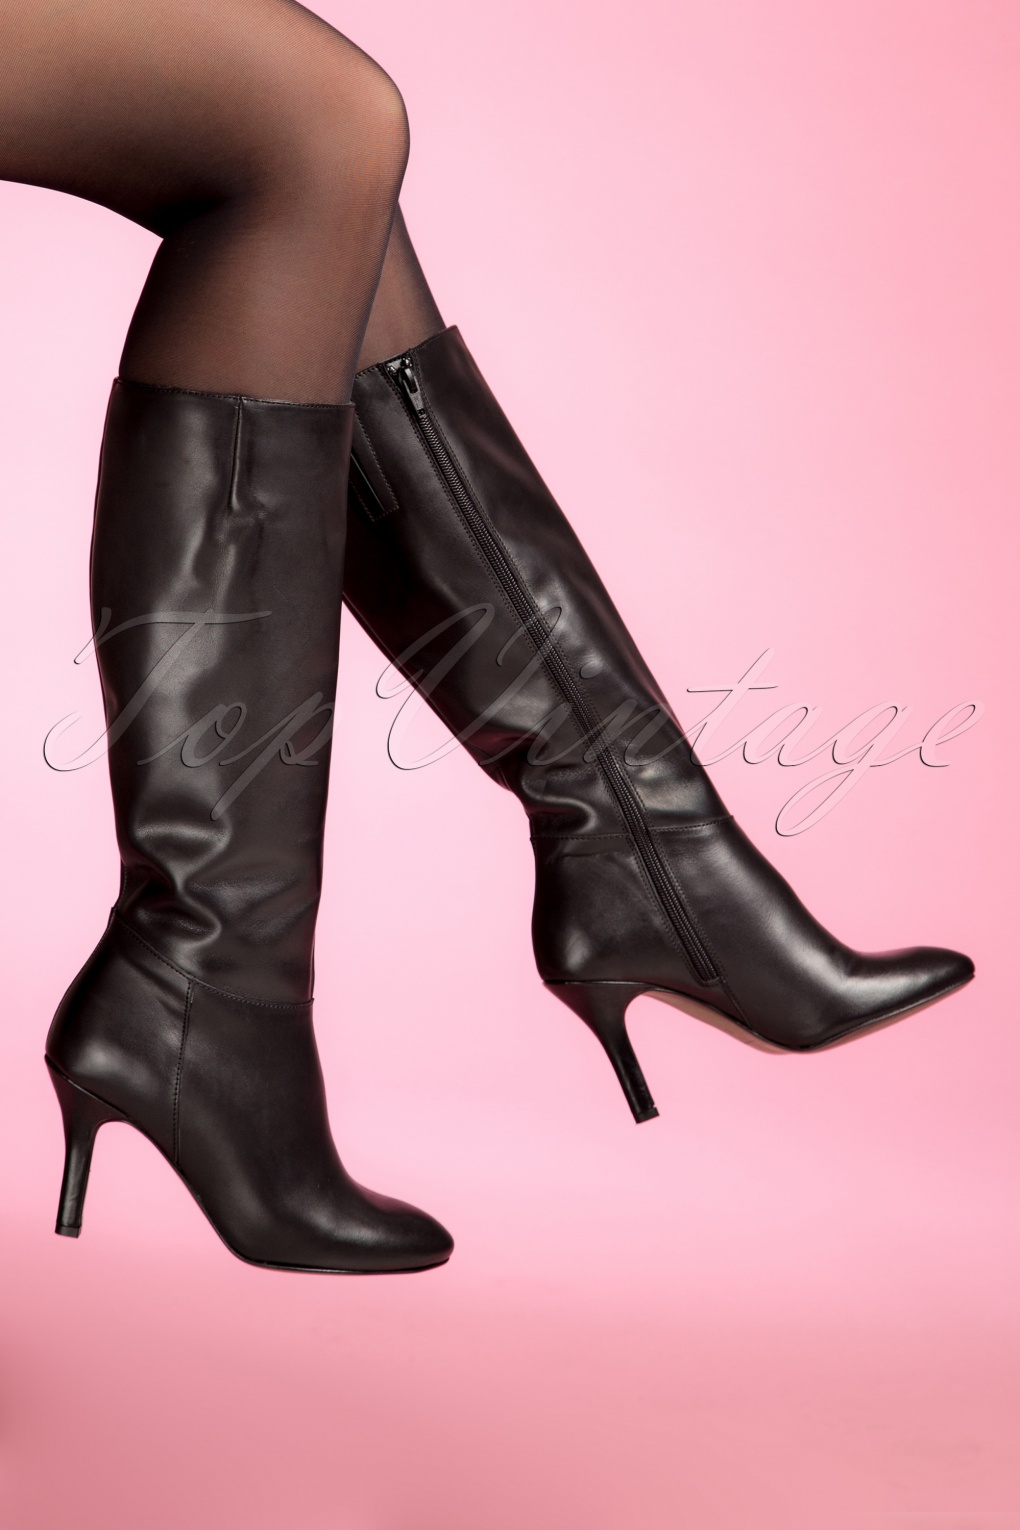 70s Lucy Leather Boots in Black